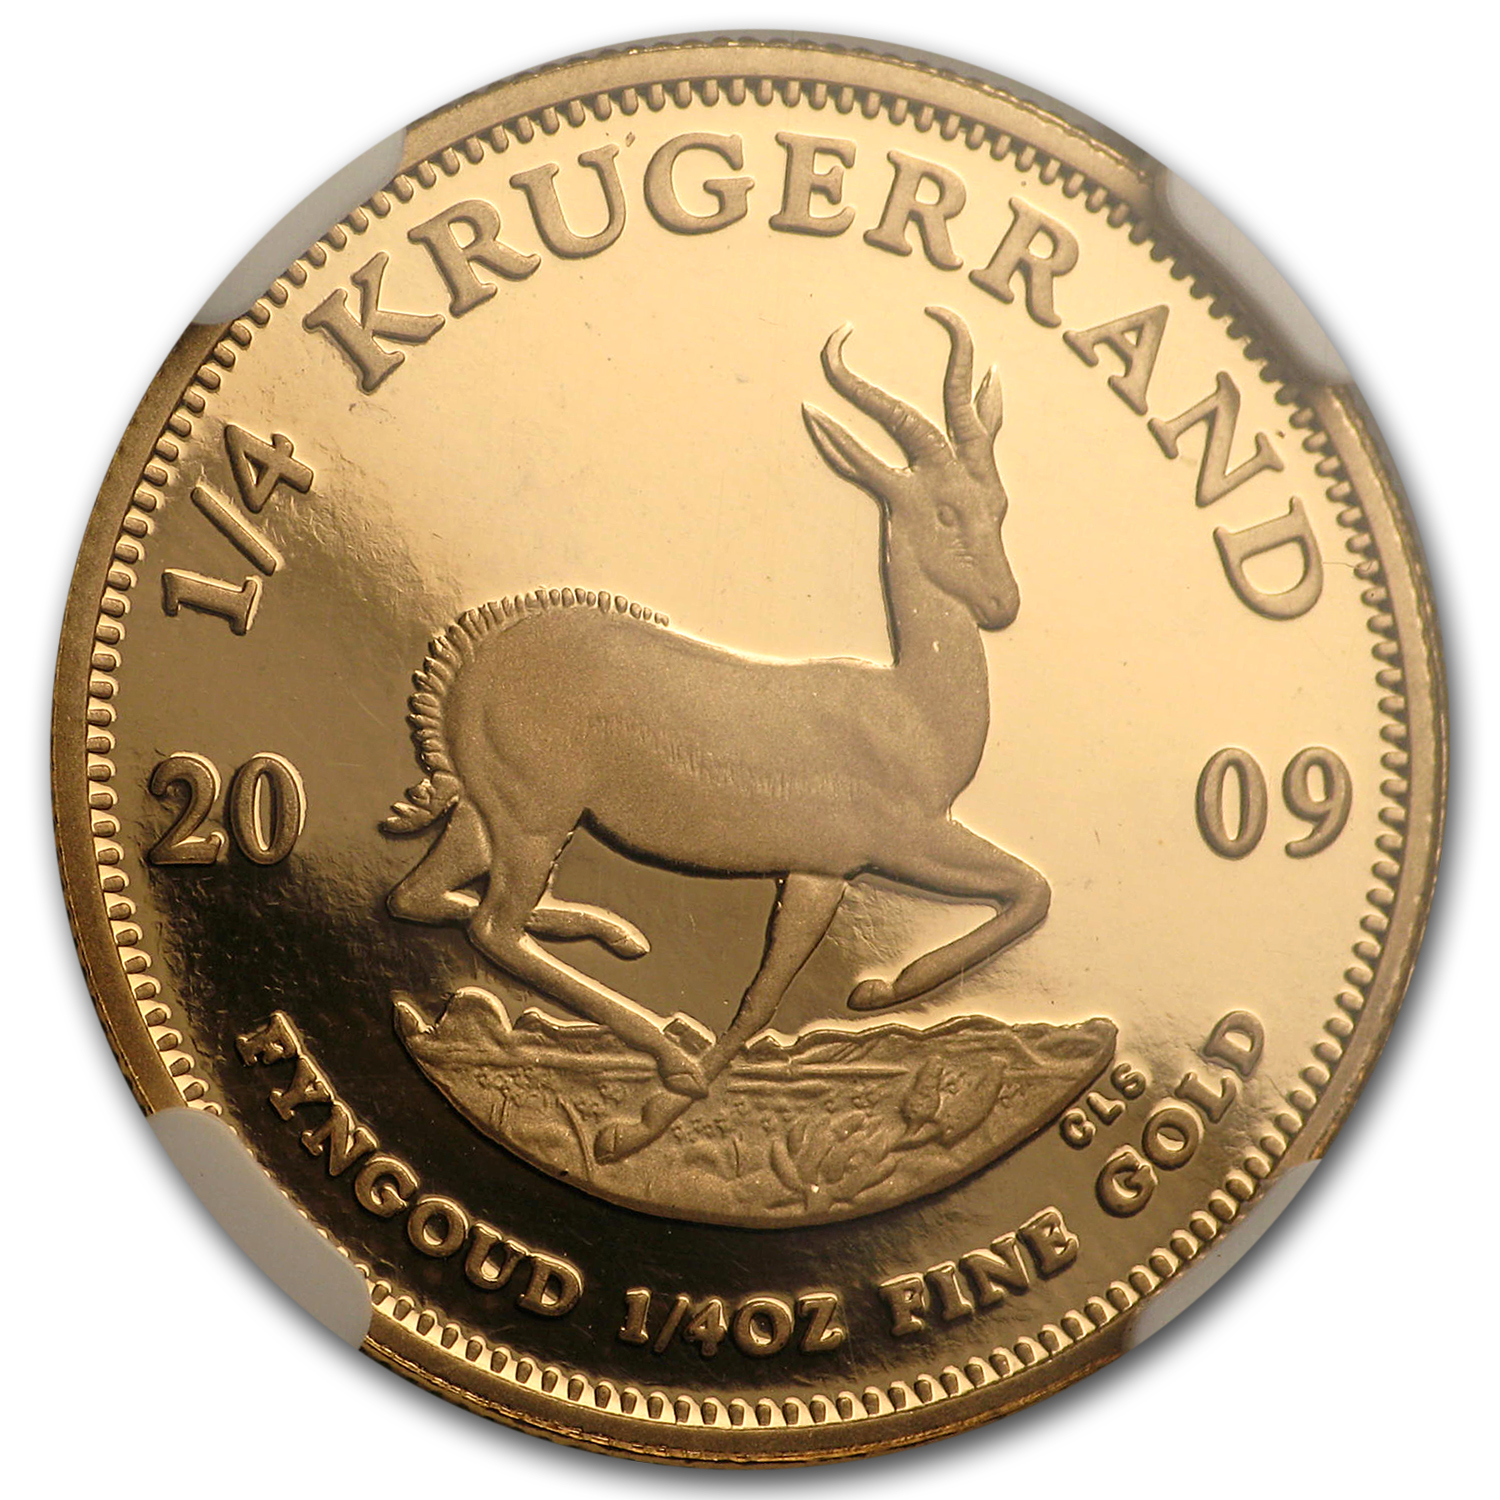 2009 South Africa 1/4 oz Gold Krugerrand PF-70 NGC